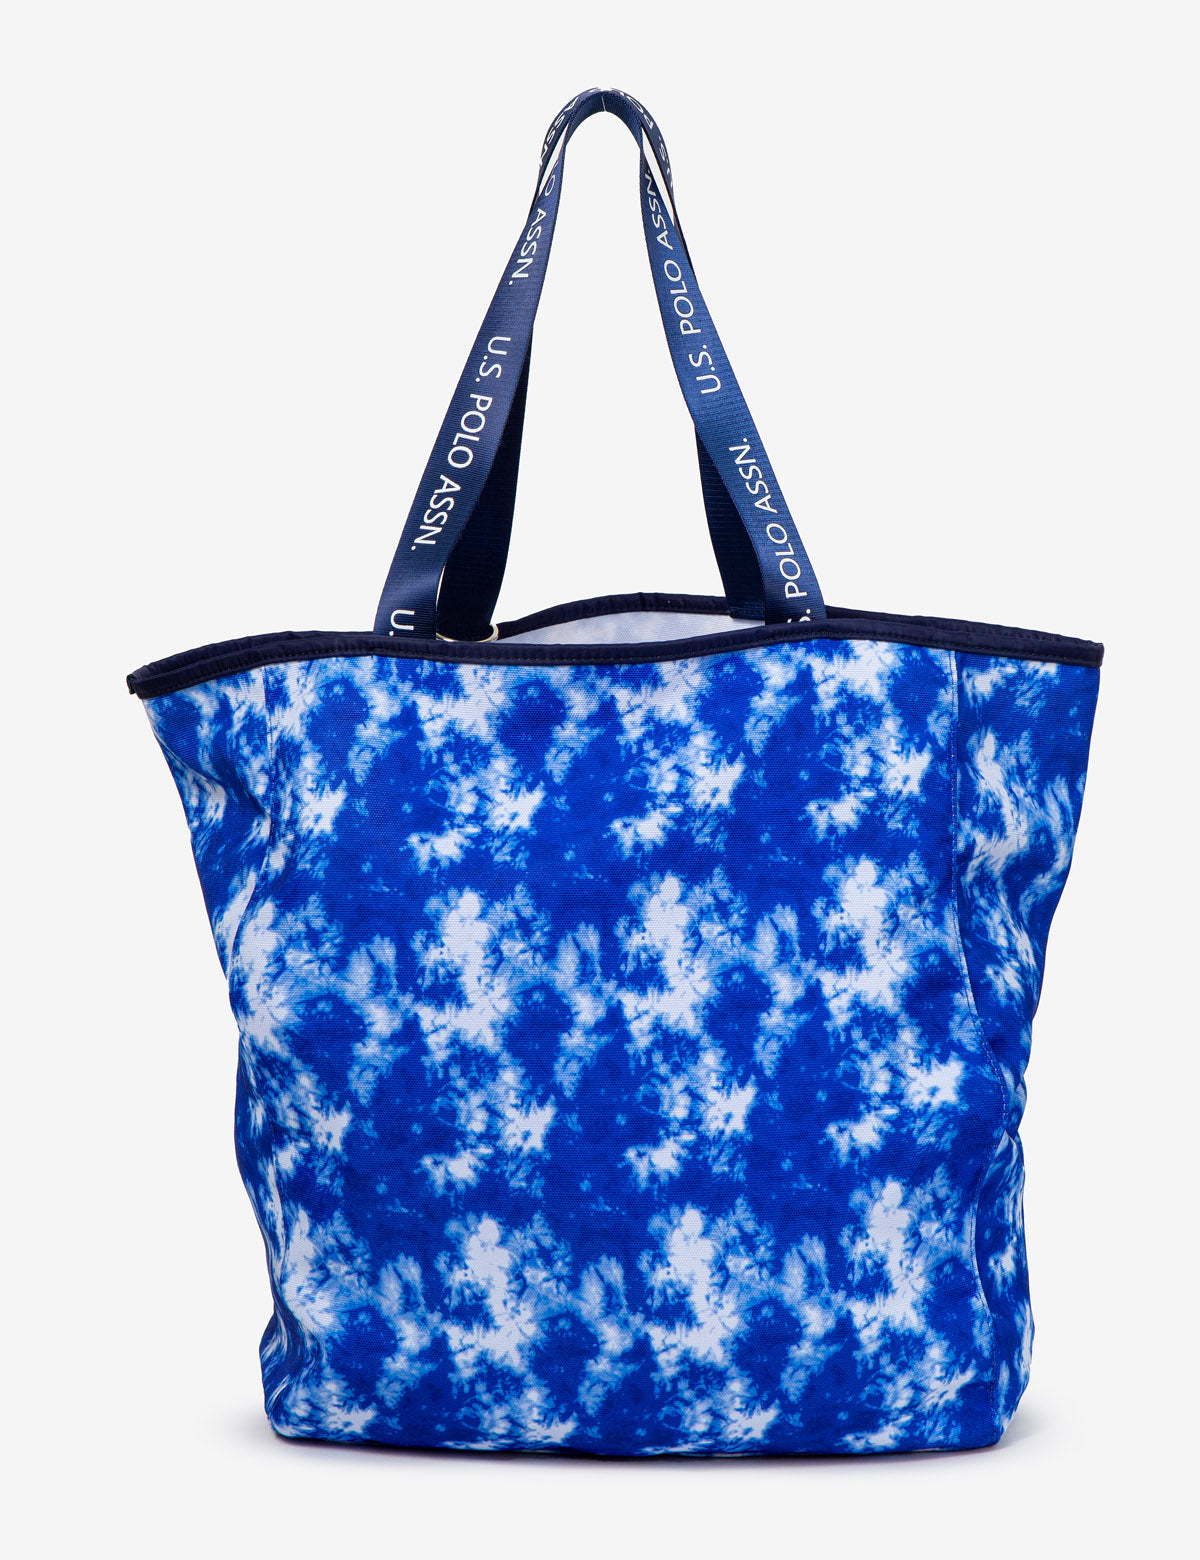 TIE-DYE CANVAS TOTE BAG - U.S. Polo Assn.